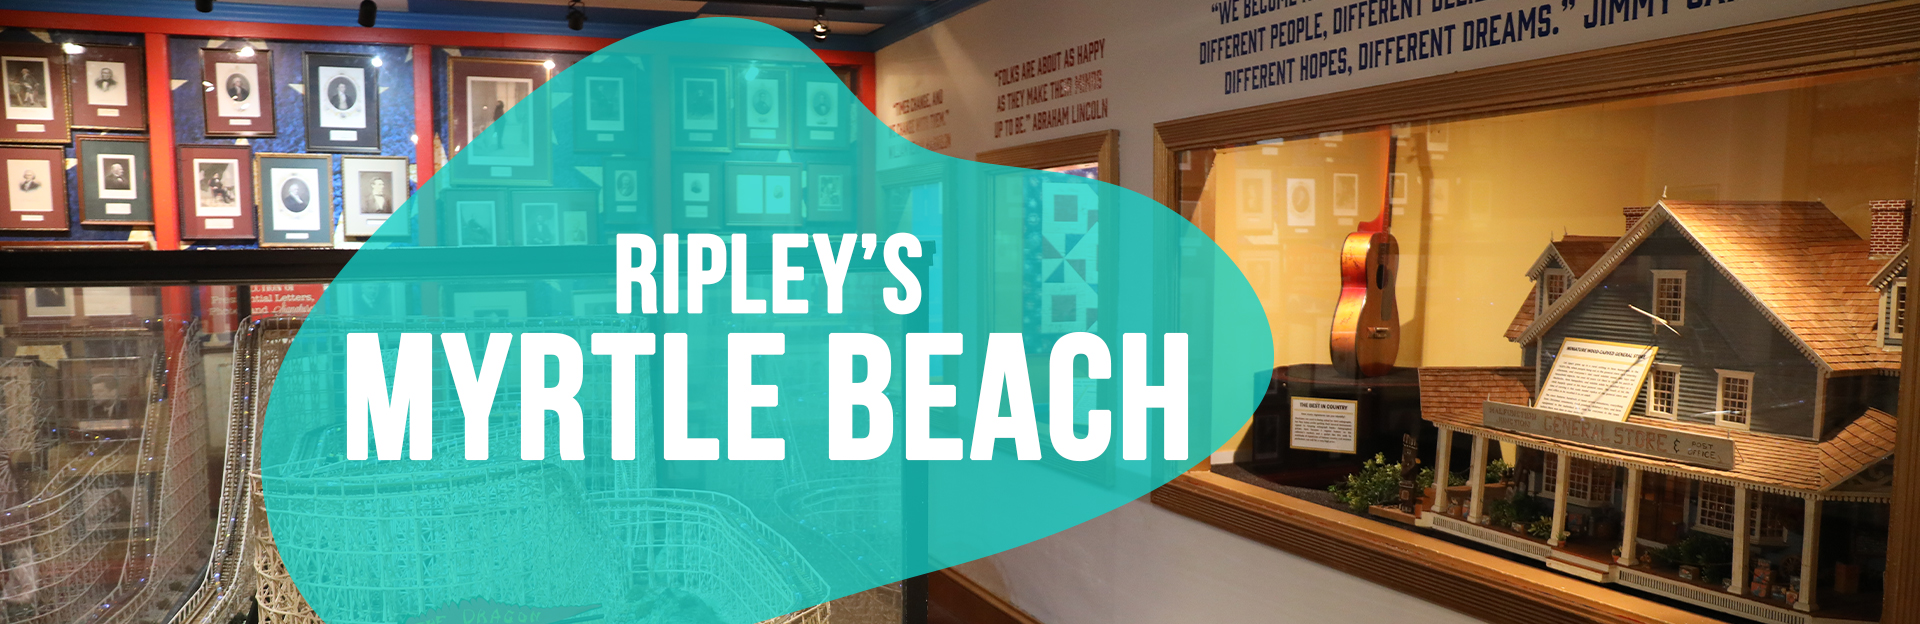 Myrtle Beach Attractions - Ripley's Aquarium of Myrtle Beach